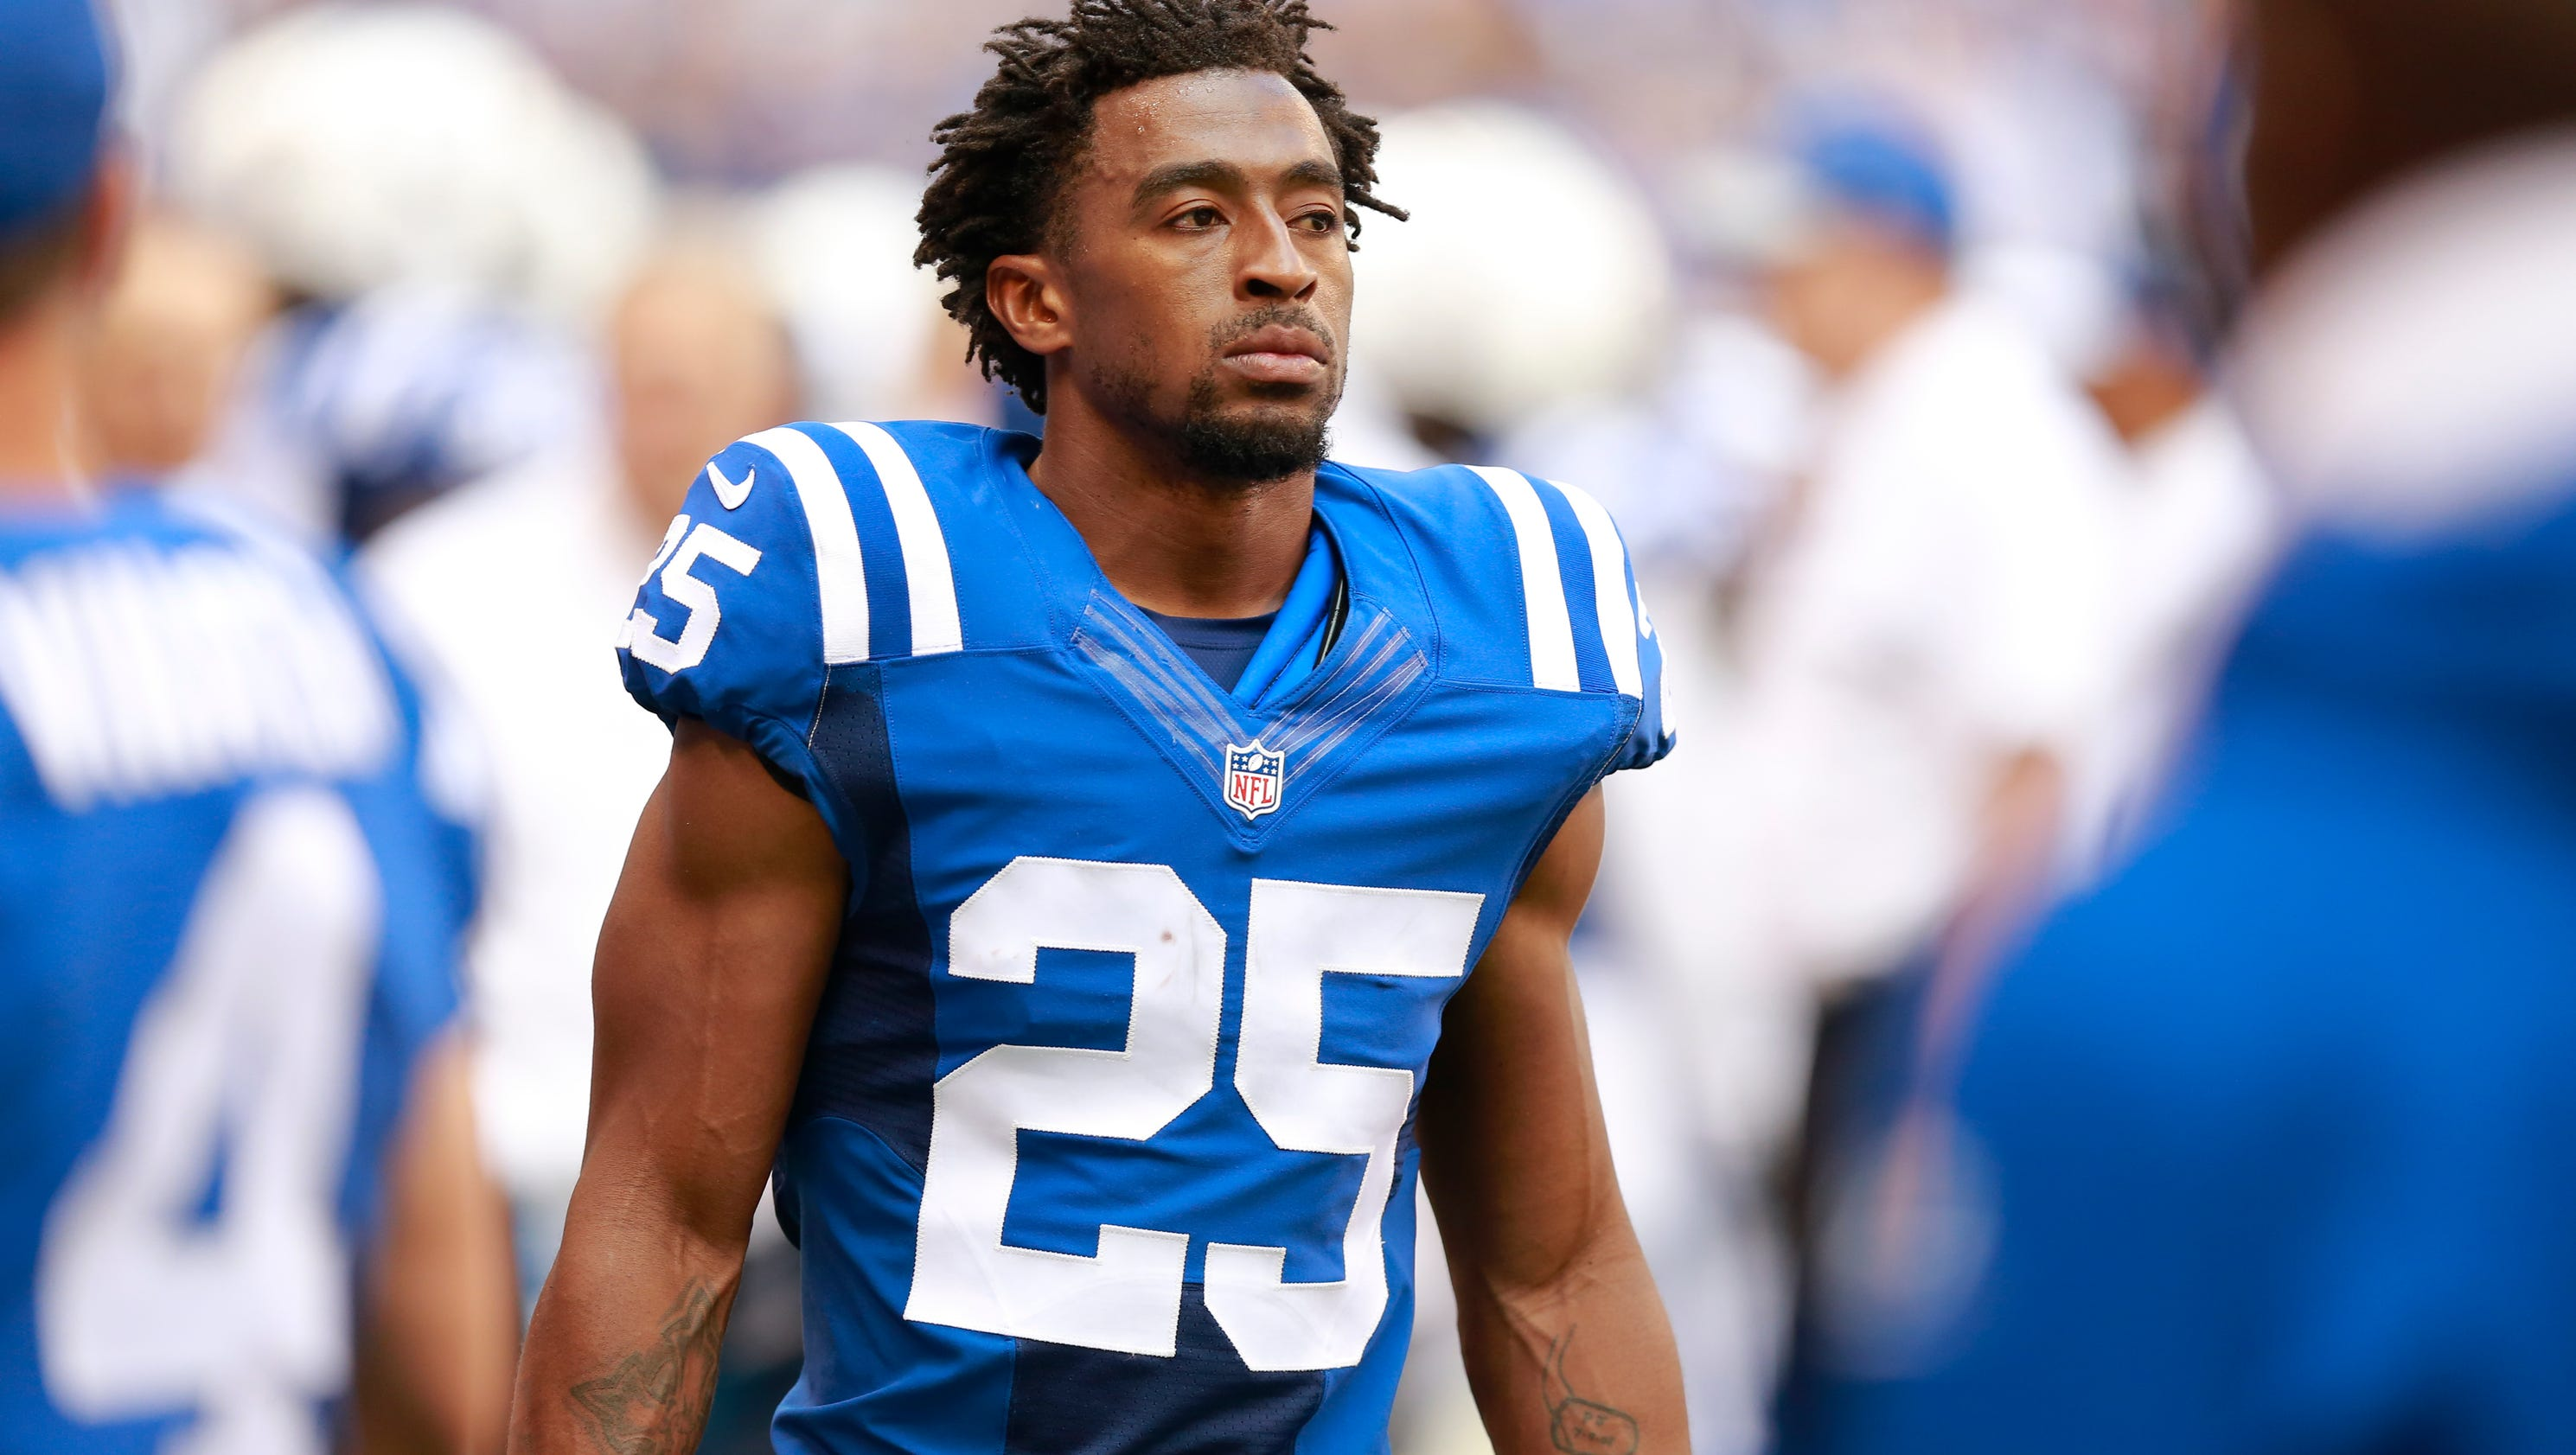 Colts send patrick robinson to injured reserve